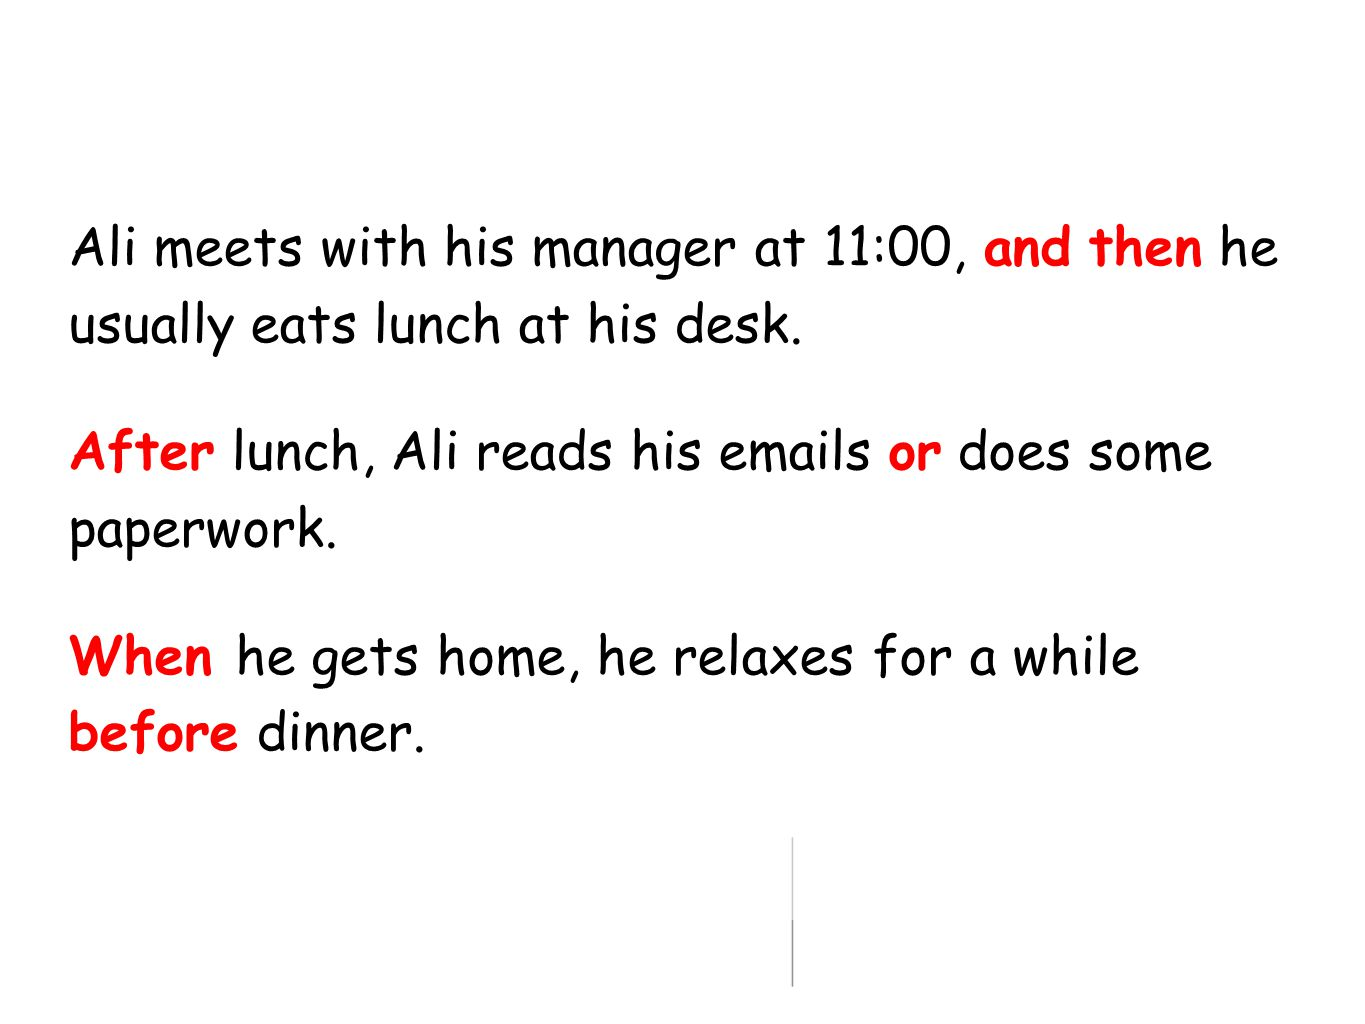 Ali meets with his manager at 11:00, and then he usually eats lunch at his desk.